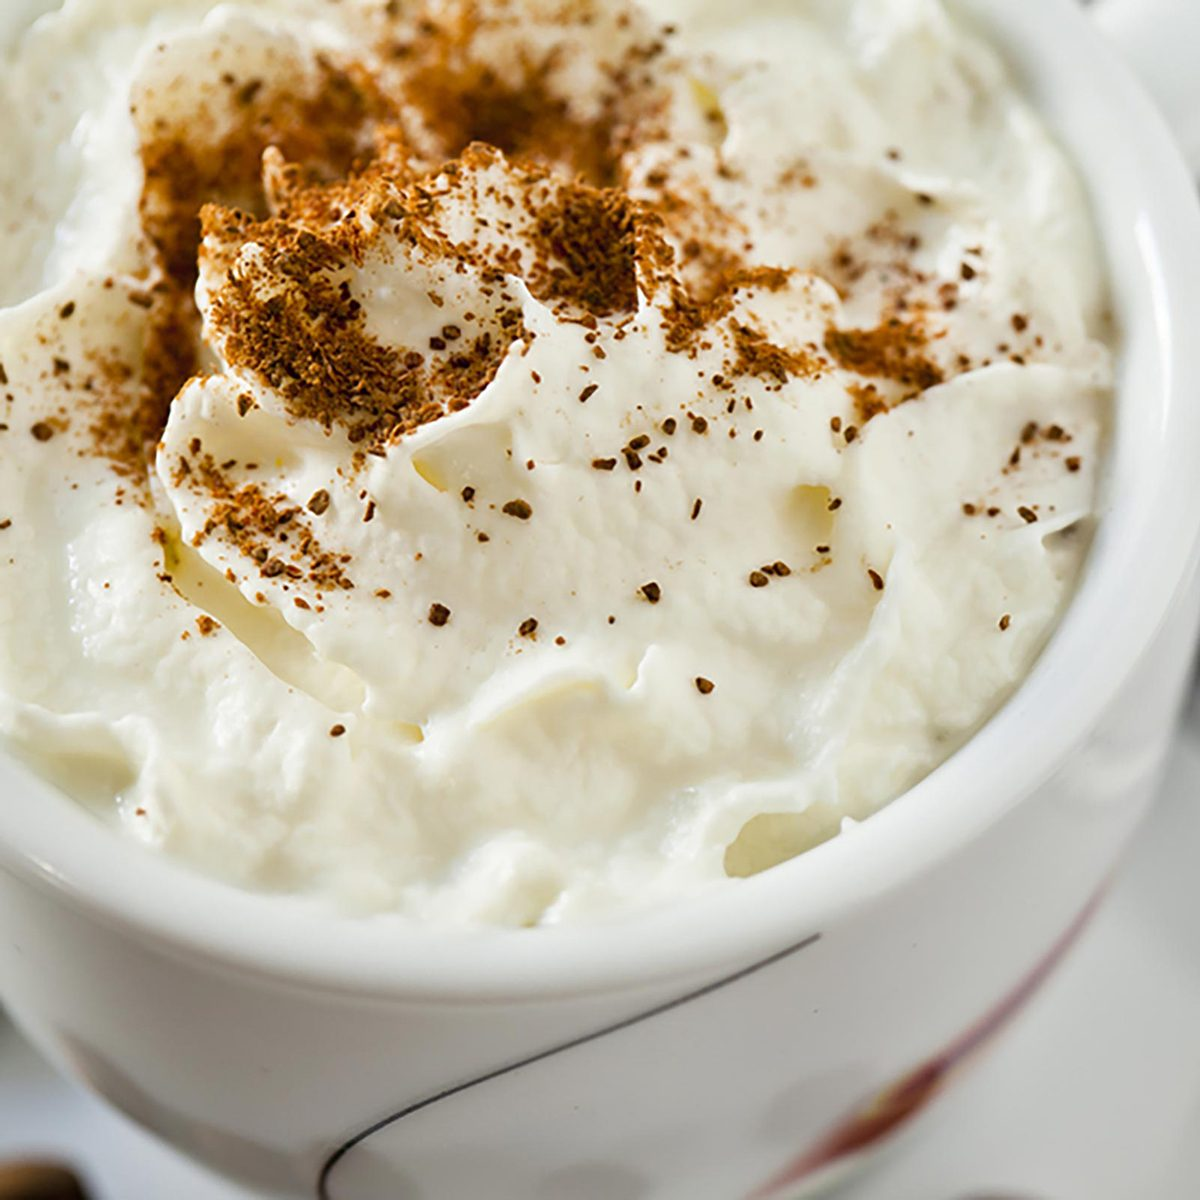 Coffee covered in whipped cream